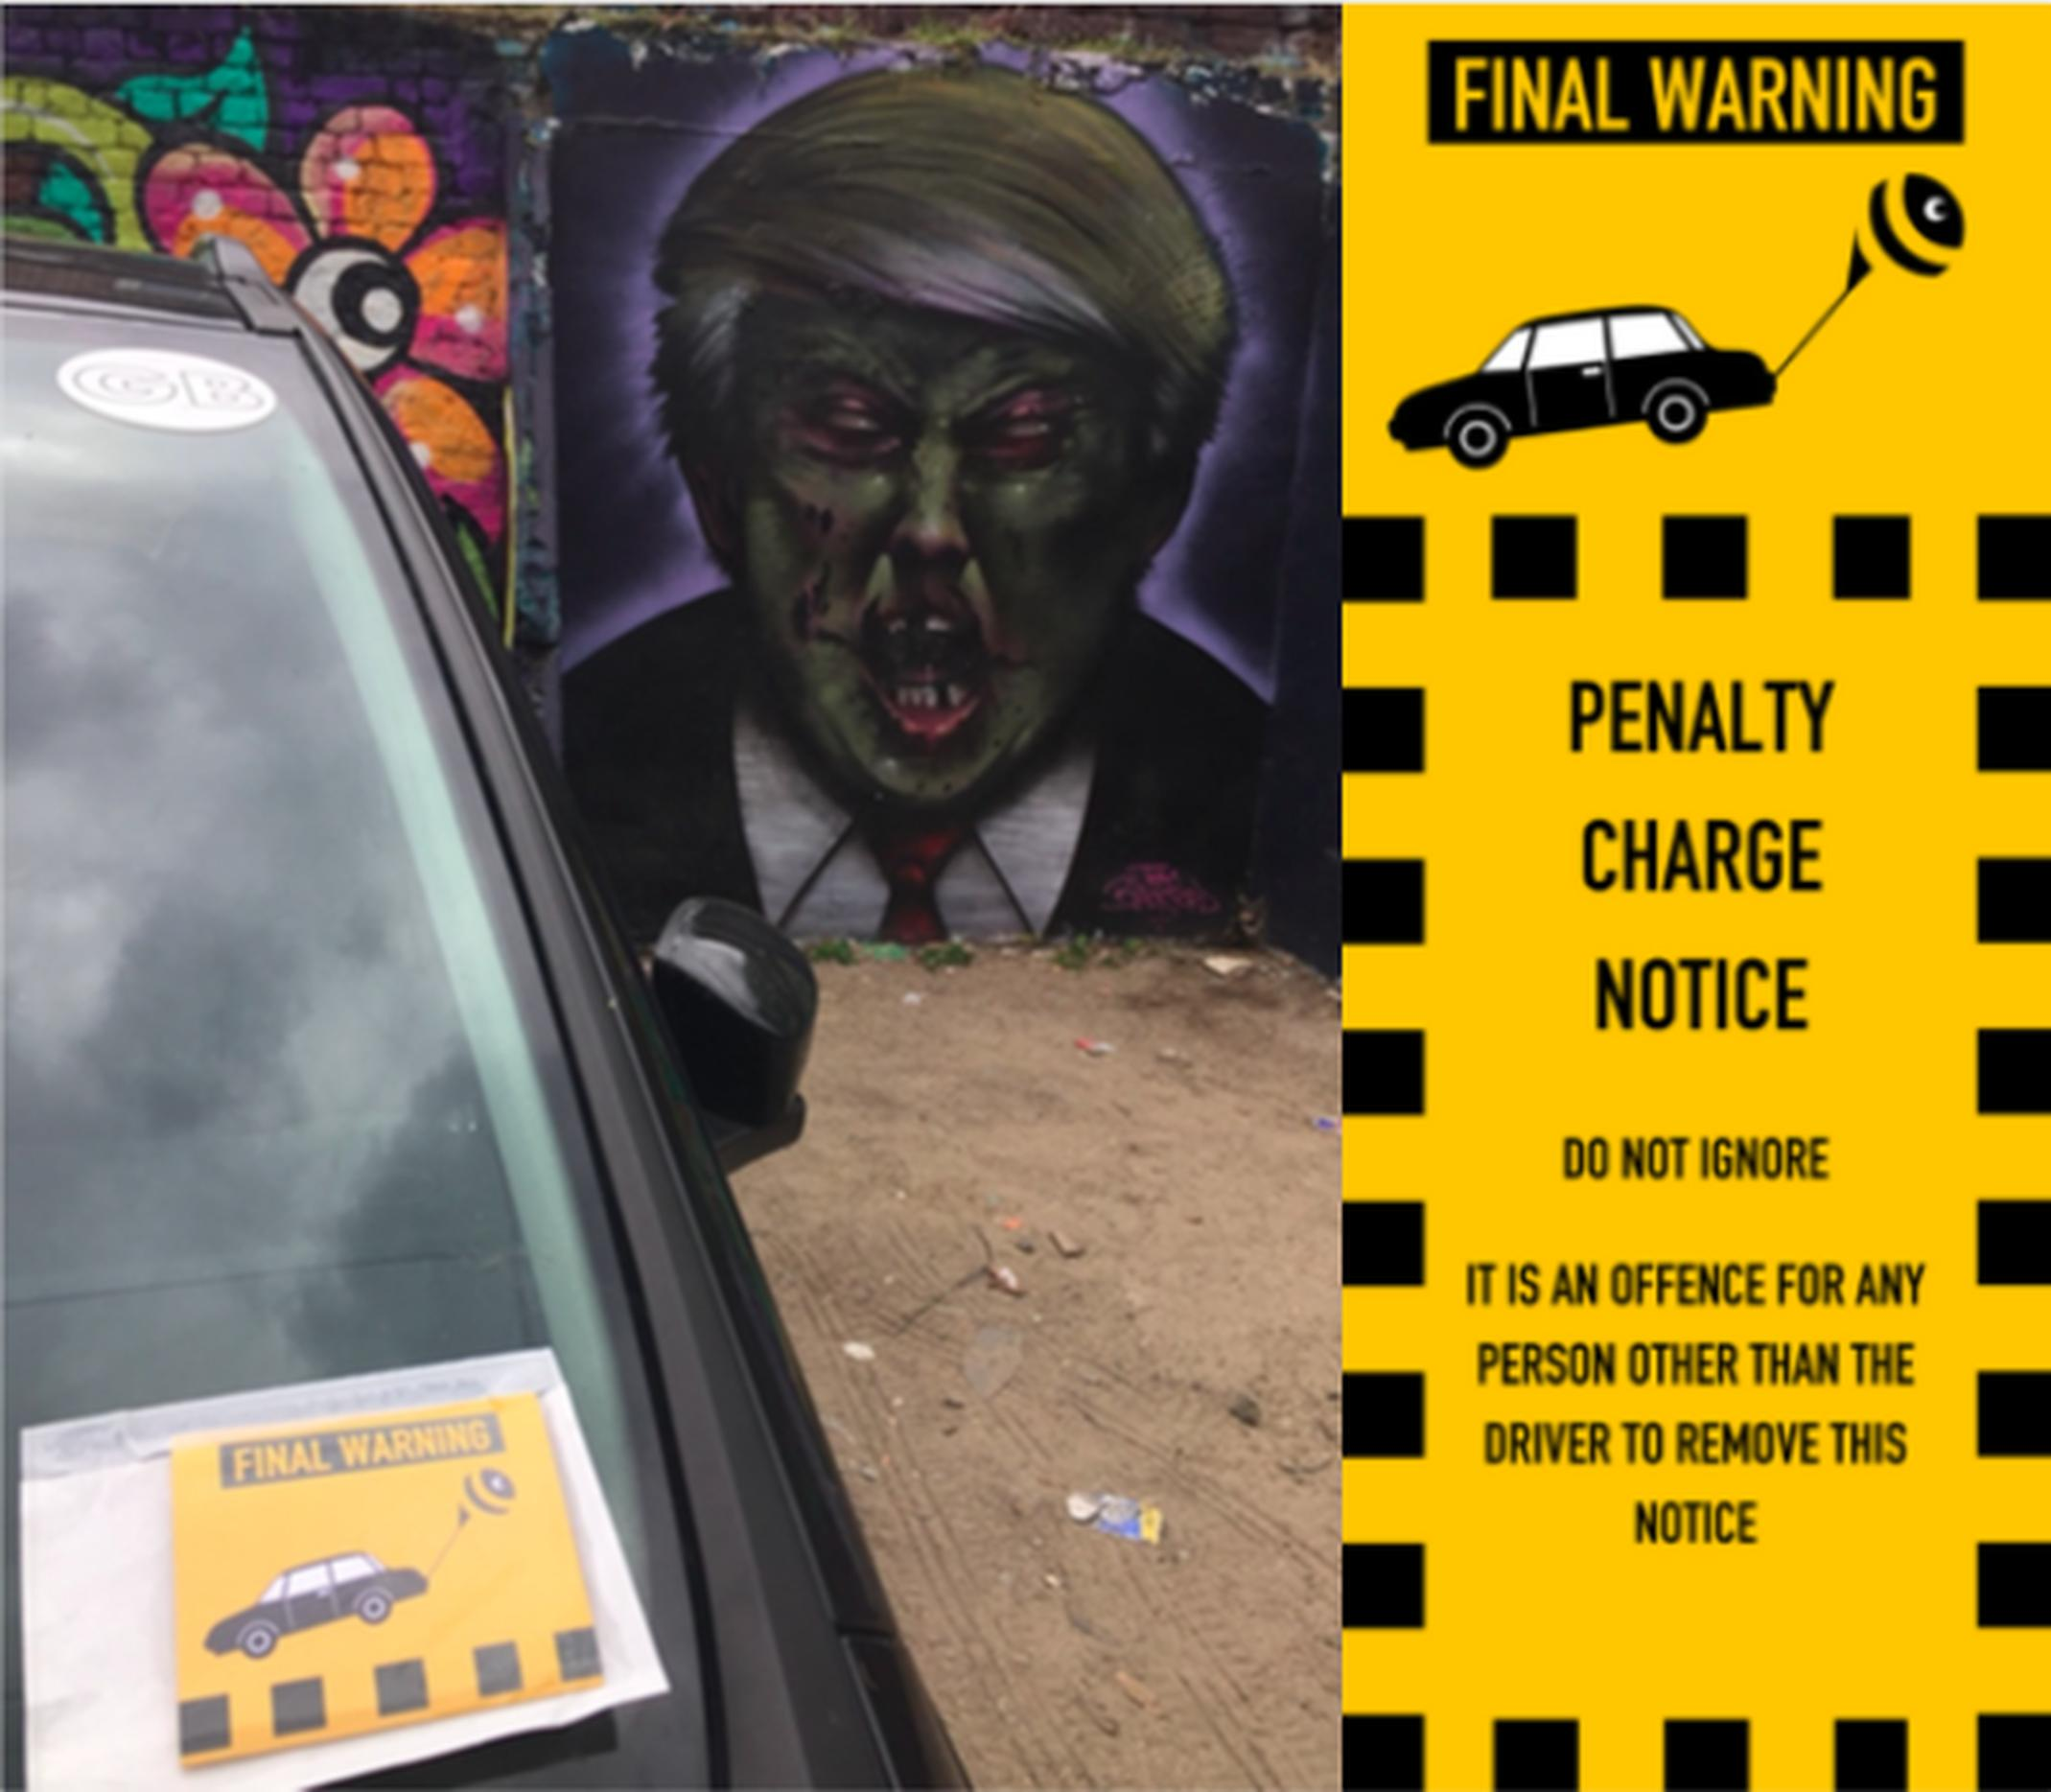 ParkBee has been posting flyers on cars in London designed to resemble PCNs